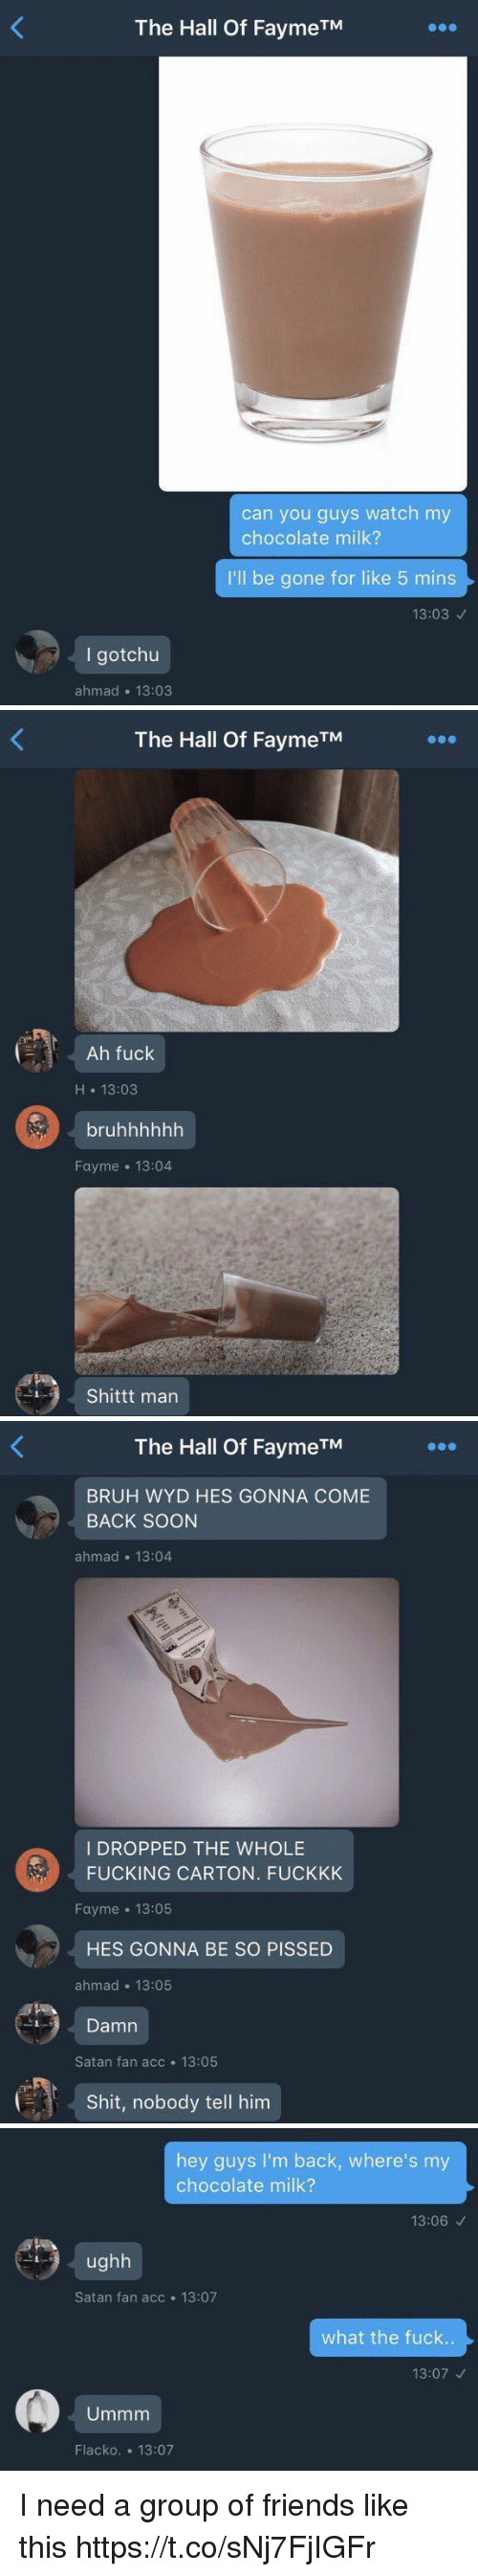 Bruh, Friends, and Fucking: The Hall Of FaymeTM  can you guys watch my  chocolate milk?  I'll be gone for like 5 mins  13:03  I gotchu  ahmad 13:03   The Hall Of FaymeTM  Ah fuck  H 13:03  bruhhhhhh  Fayme 13:04  Shittt man   The Hall Of FaymeTM  BRUH WYD HES GONNA COME  BACK SOON  ahmad 13:04  I DROPPED THE WHOLE  FUCKING CARTON. FUCKKK  Fayme 13:05  HES GONNA BE SO PISSED  ahmad 13:05  Damn  Satan fan acc 13:05  Shit, nobody tell him   hey guys I'm back, where's my  chocolate milk?  13:06  ughh  Satan fan acc 13:07  what the fuck..  13:07  Ummm  Flacko. 13:07 I need a group of friends like this https://t.co/sNj7FjIGFr